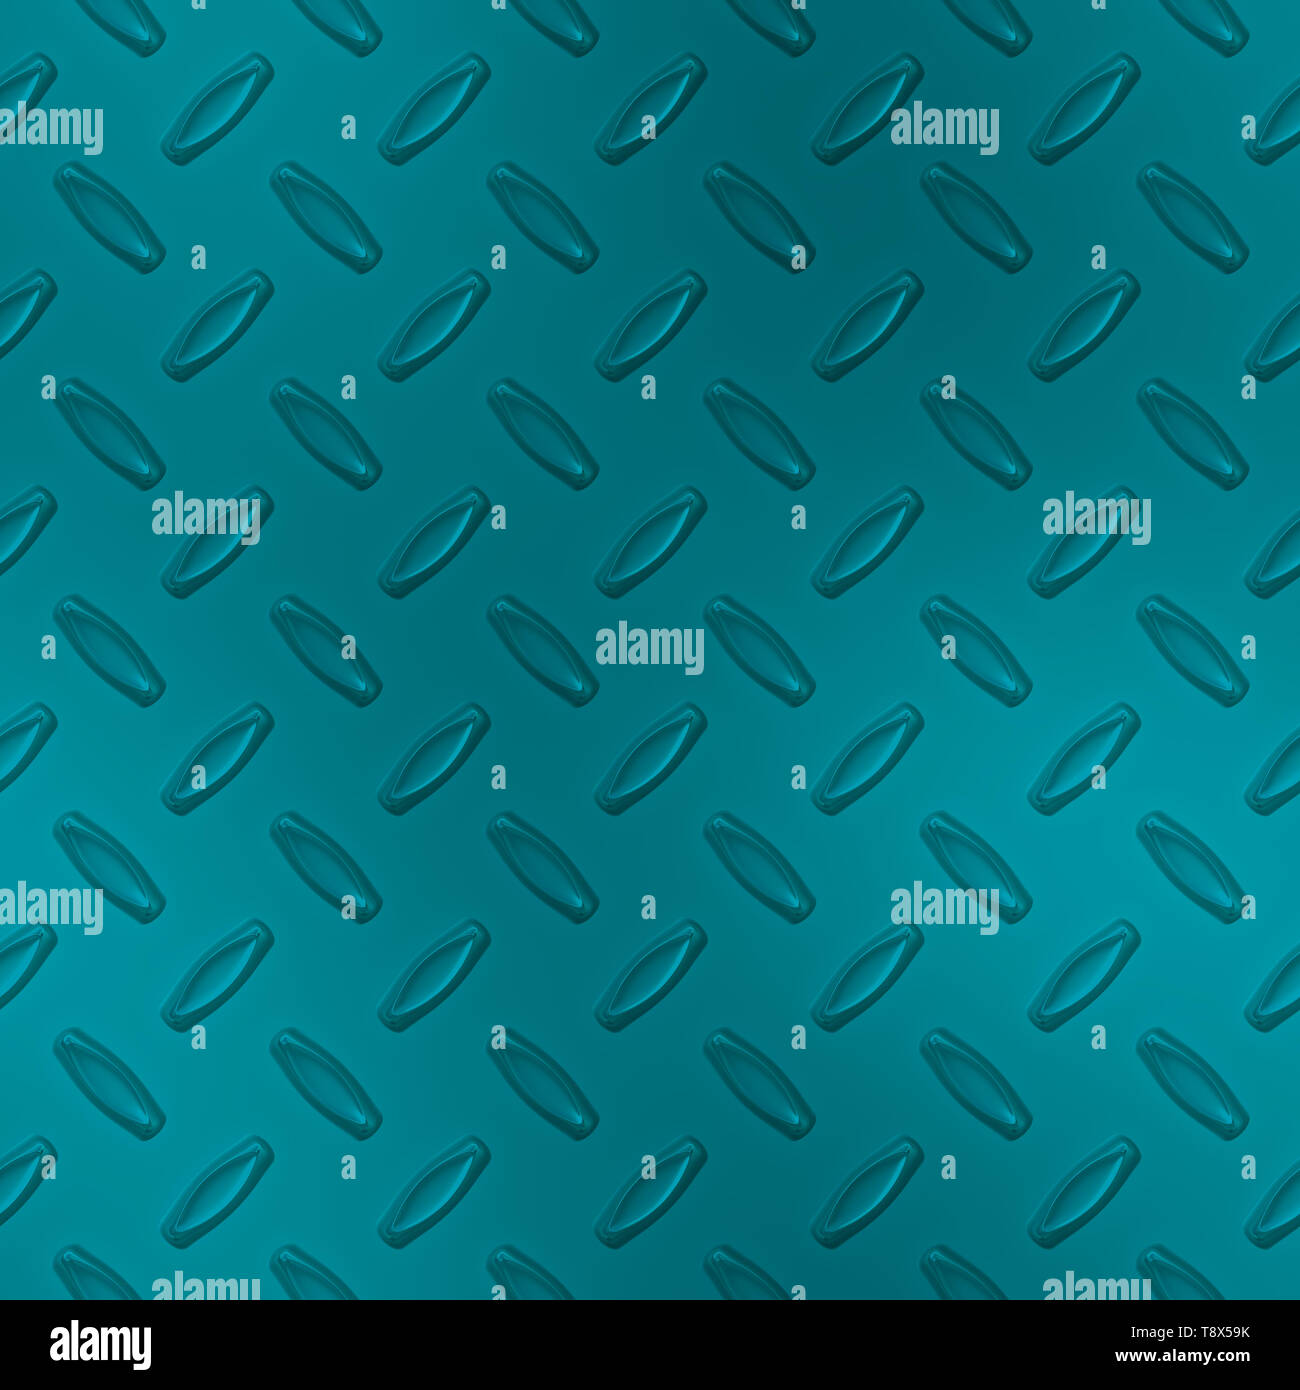 Teal Blue Diamond Plate Metal Seamless Texture Tile - Stock Image